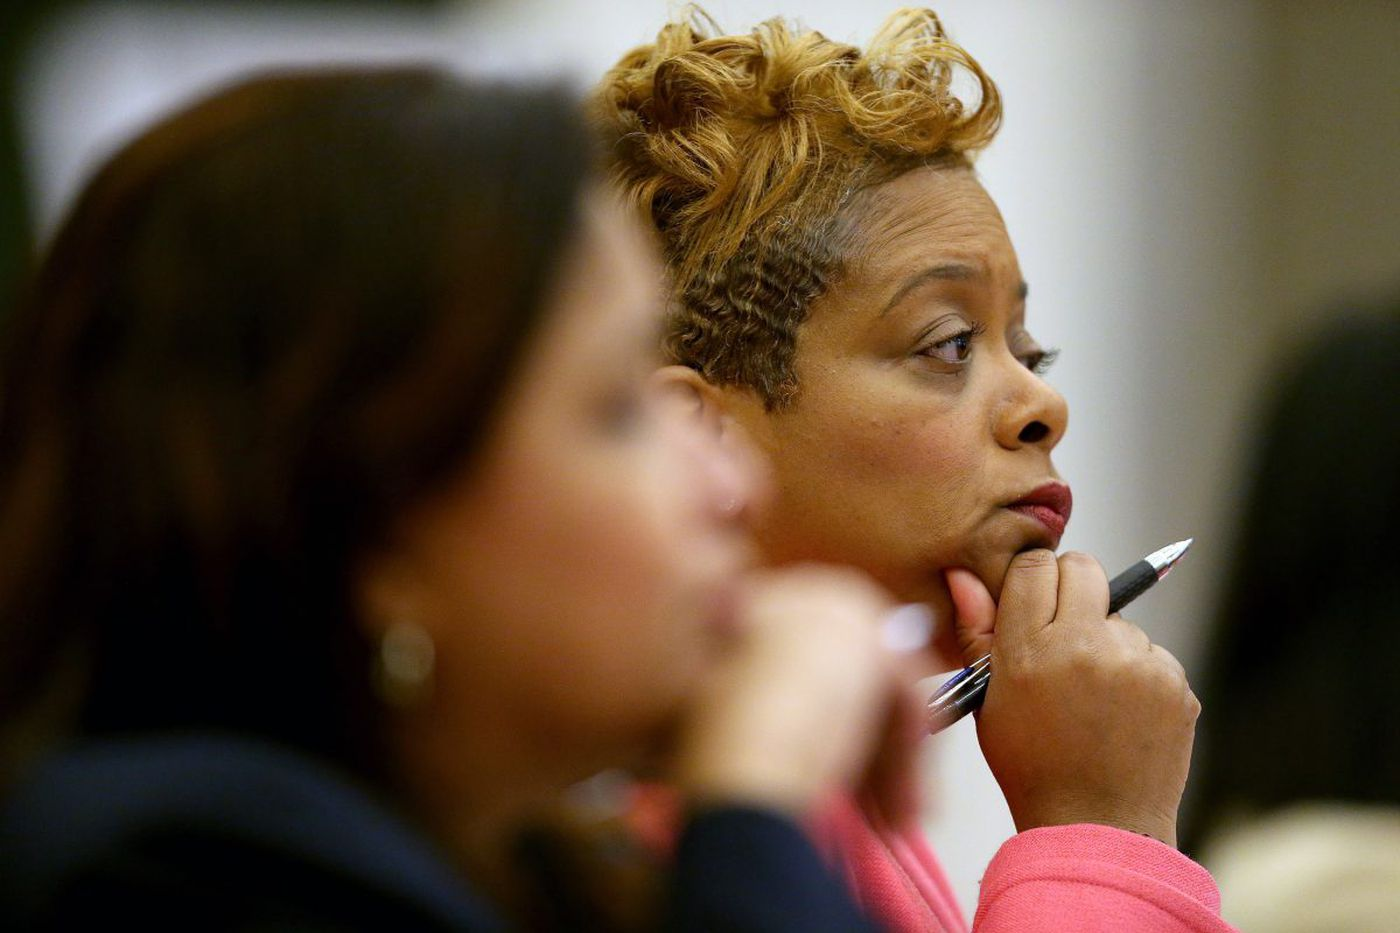 City halts foster care intakes at two agencies that discriminate against LGBTQ people